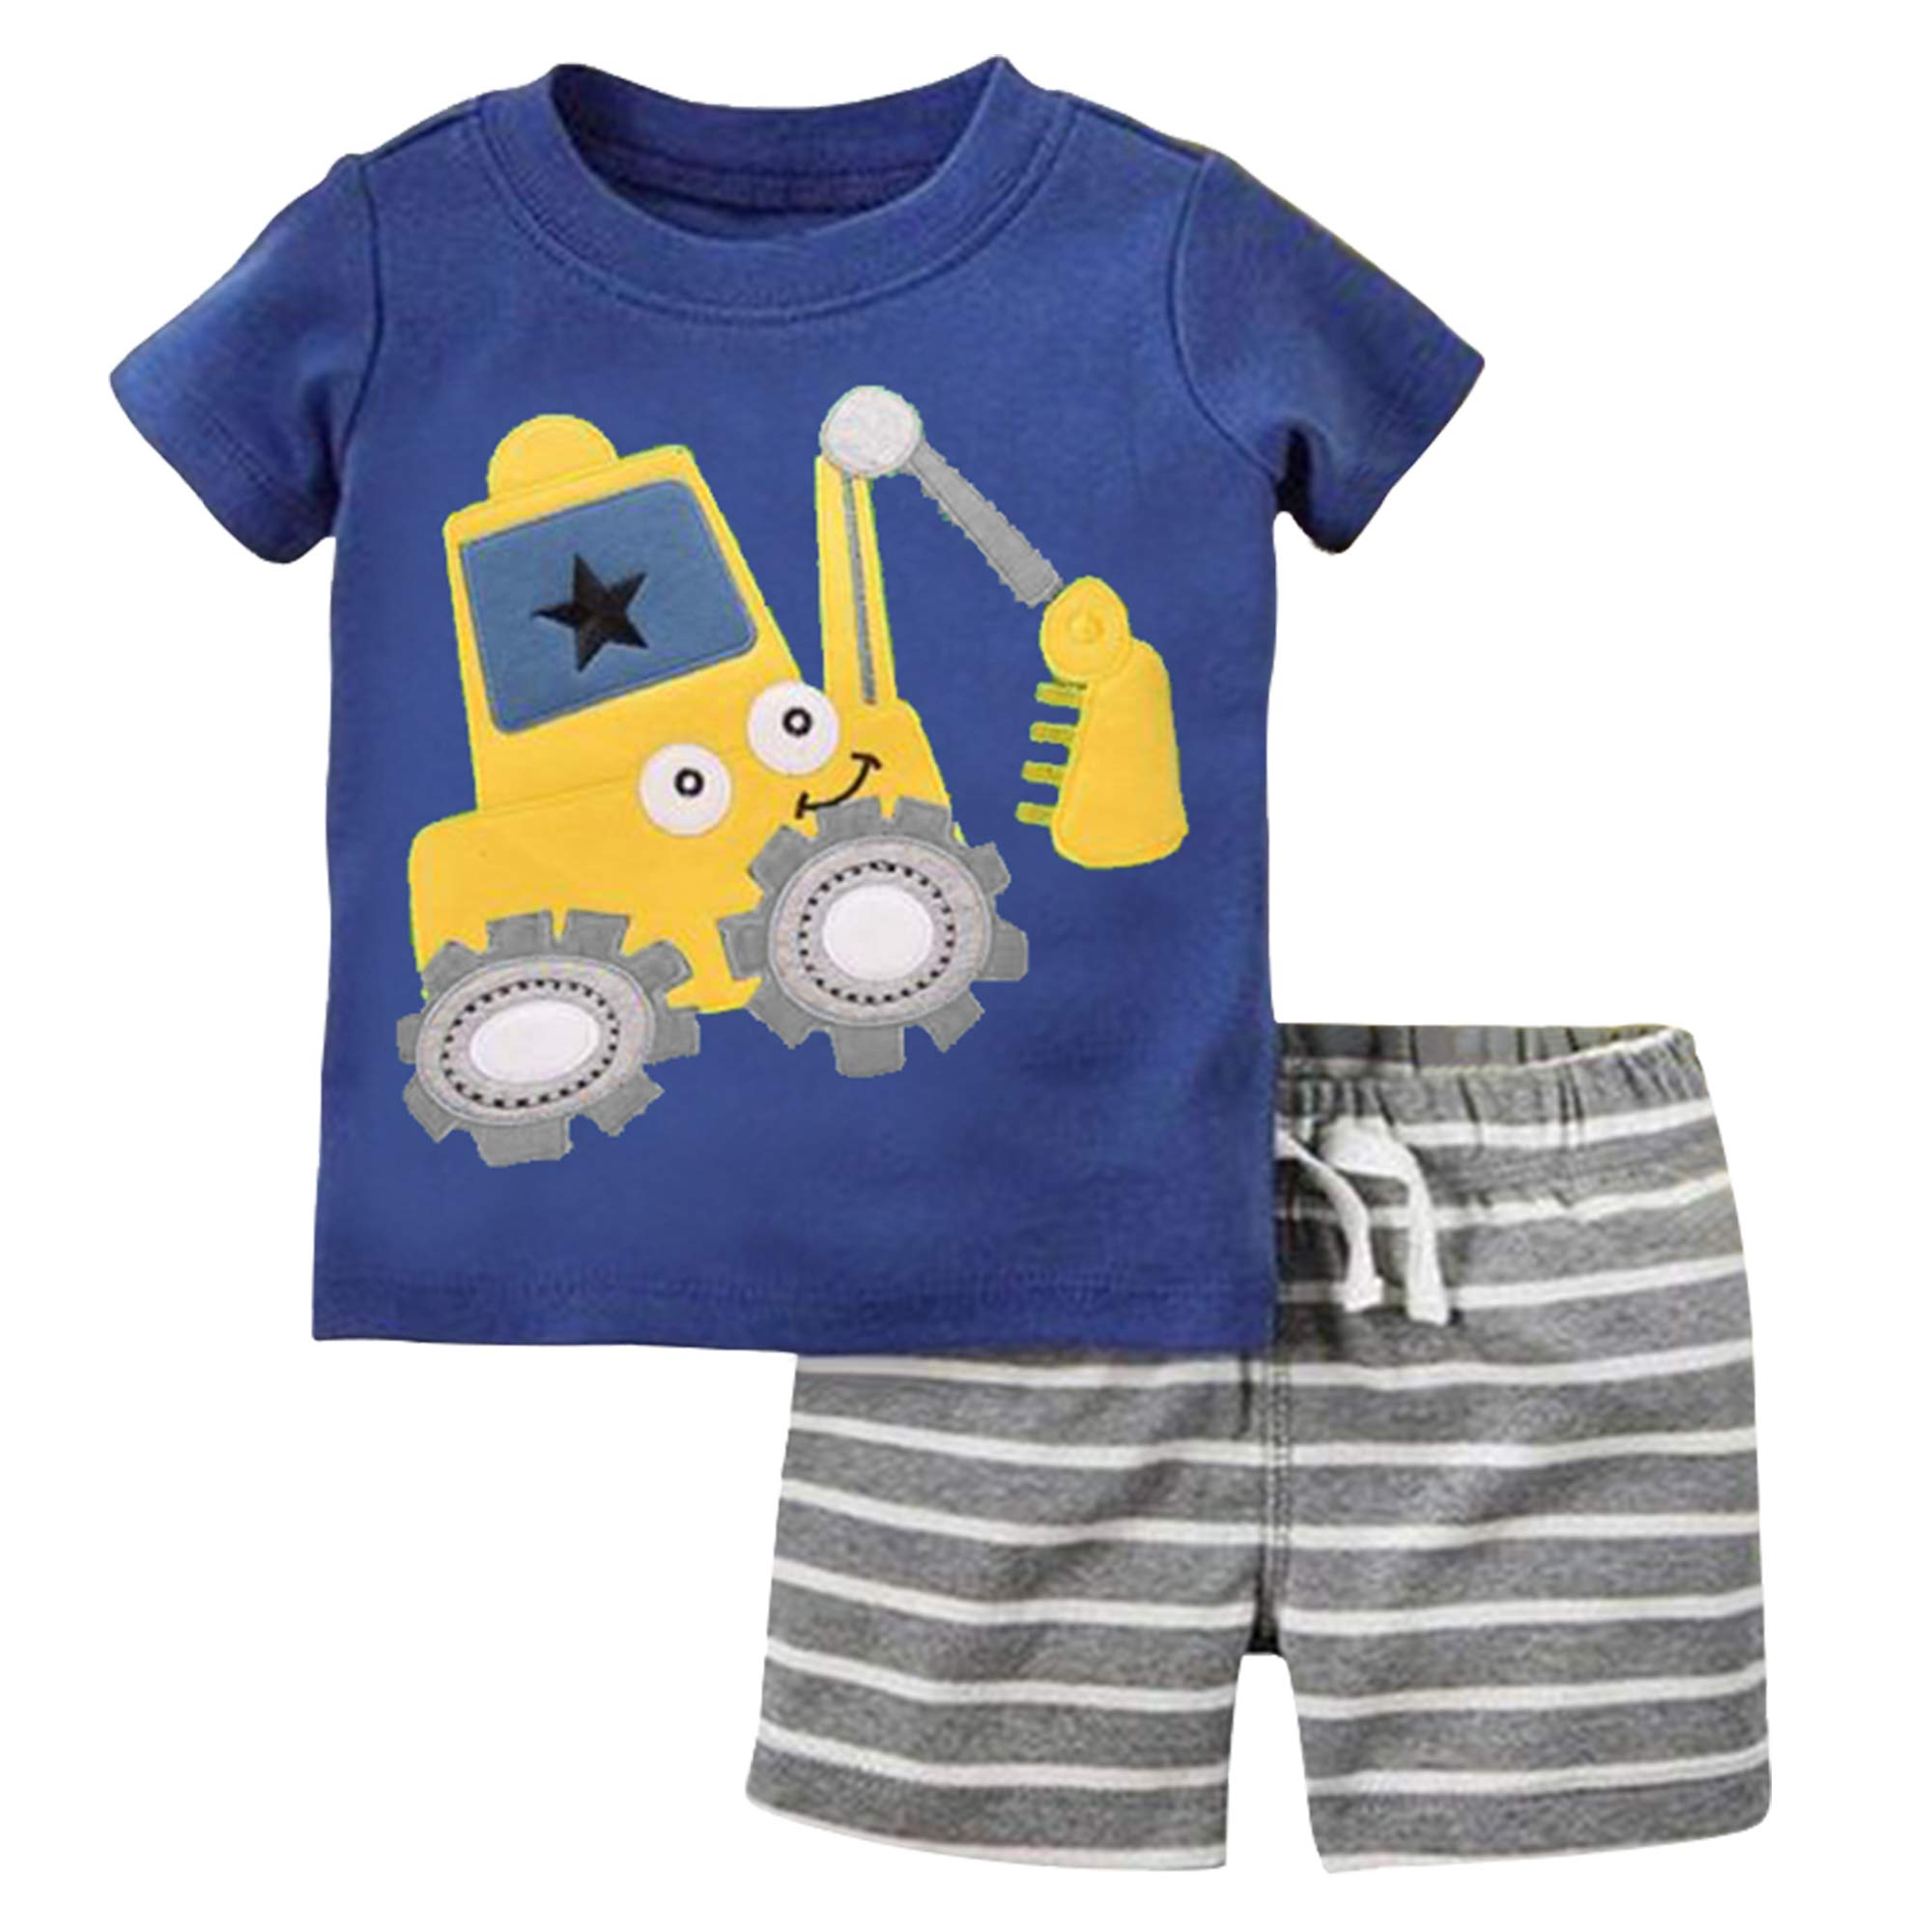 ARAUS Kids Trousers Girl Boy Casual Sweatpants Cartoon Sports Pants Tracksuit Bottoms 1-5 Years